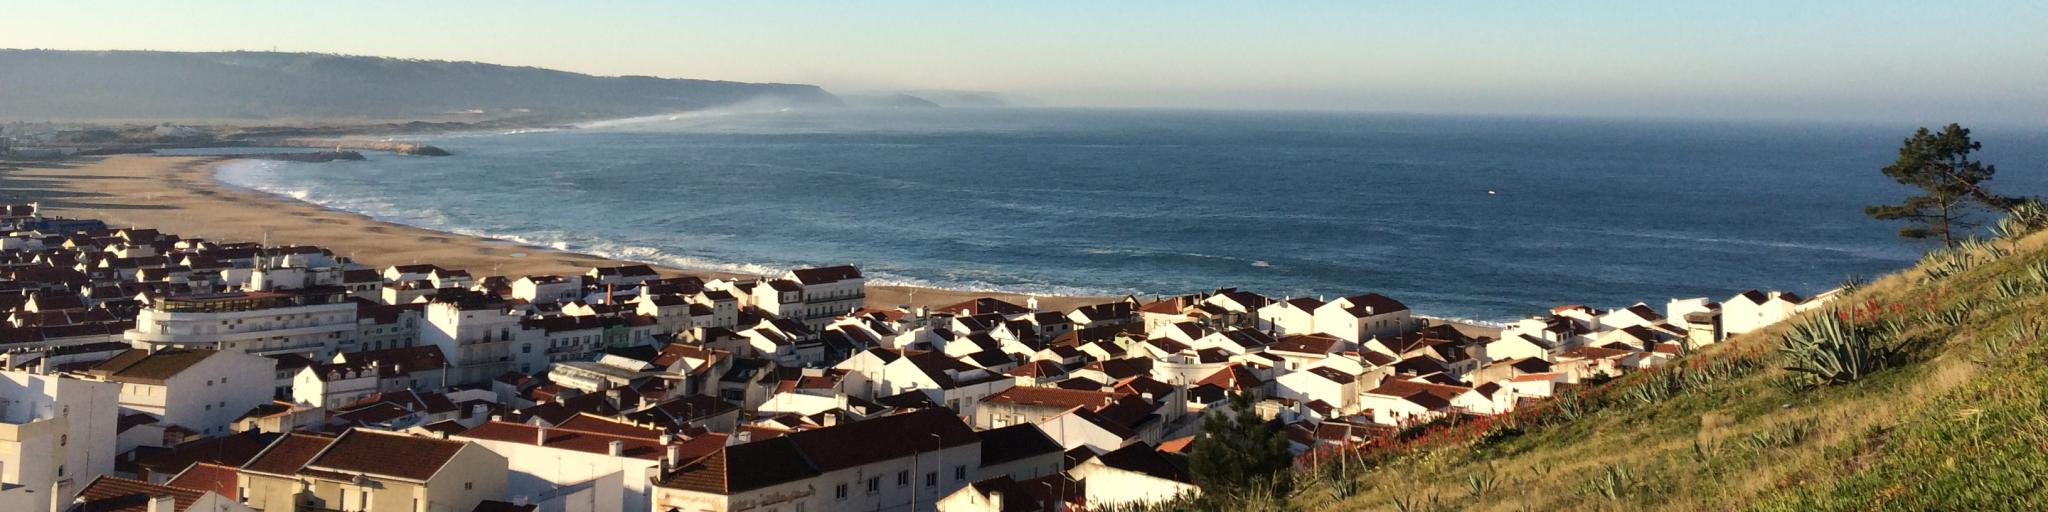 A view over the sandy coastline and red roofs of Nazare, Portugal